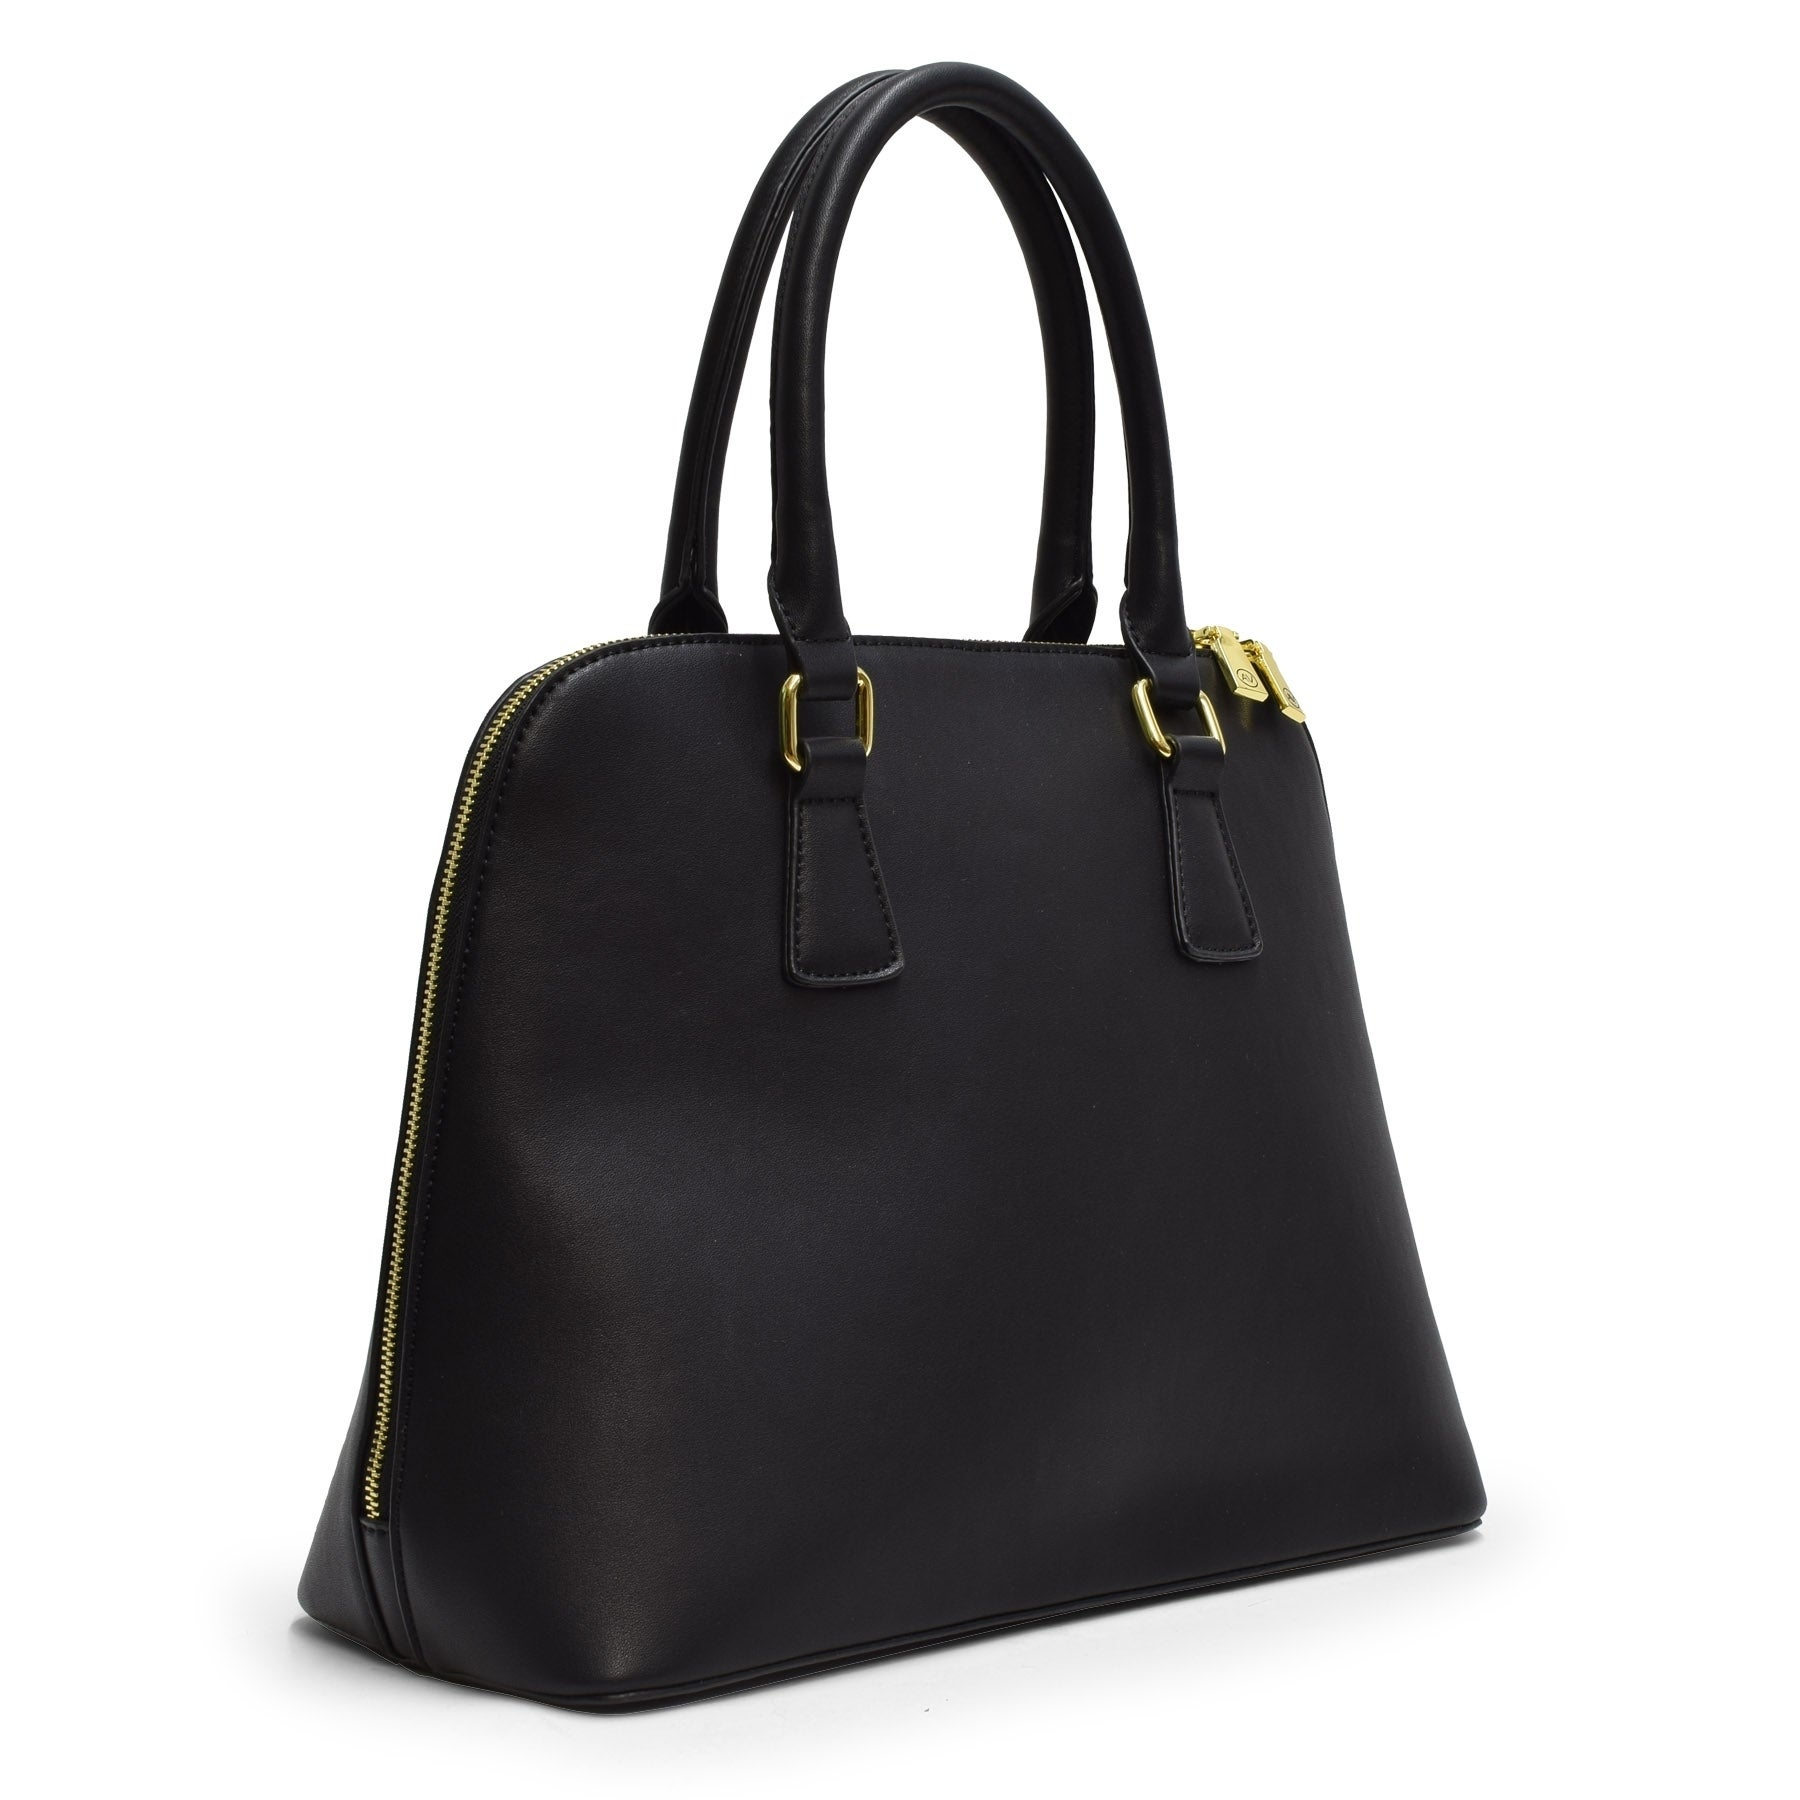 4c75dec3f4 Shop Adrienne Vittadini Classic Smooth Dome Satchel-Black - On Sale - Free  Shipping Today - Overstock - 20987549